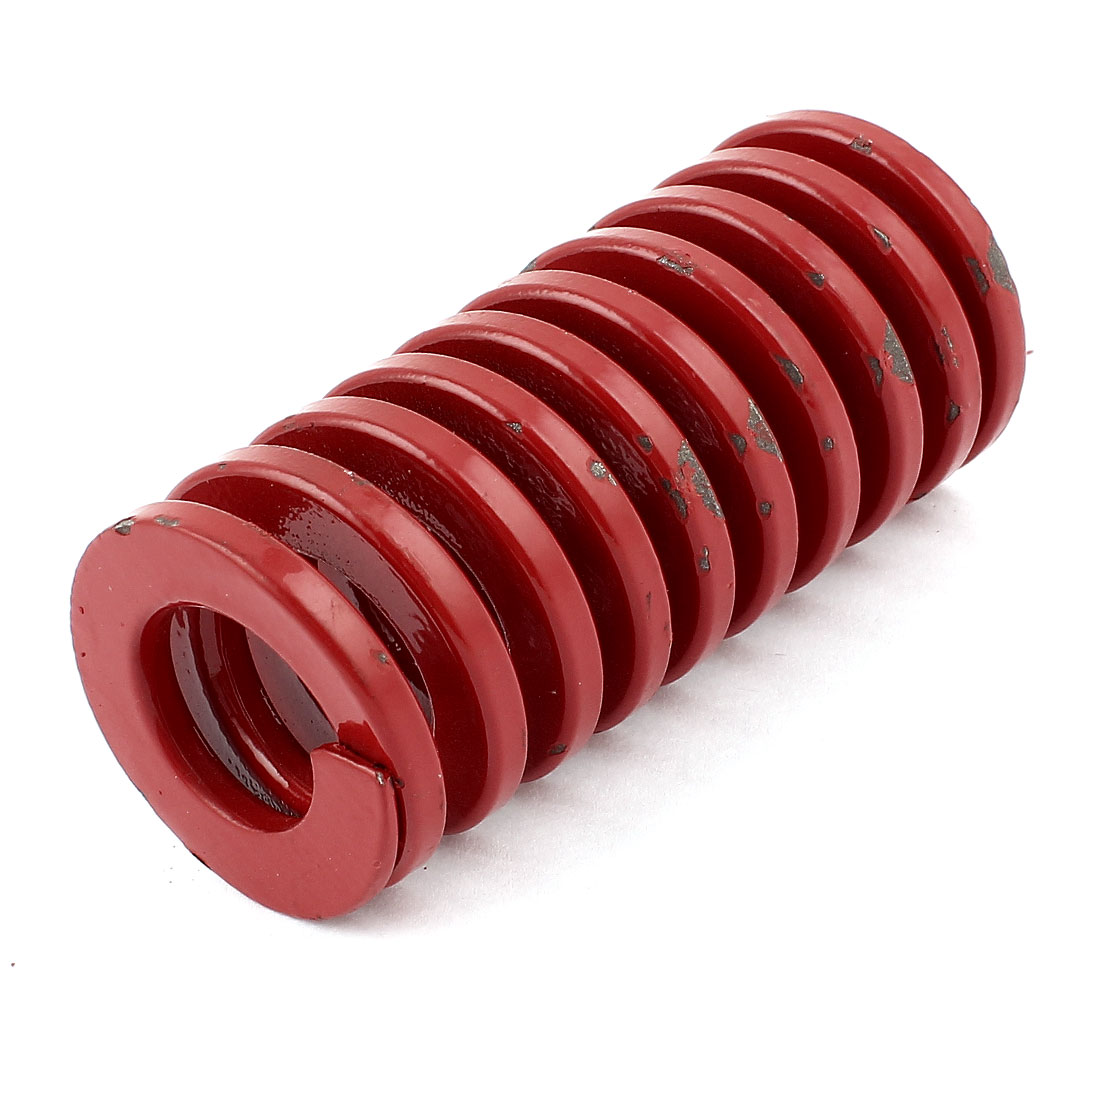 Red Alloy Steel Medium Load Press Flat Coil Compression Die Spring 35mm x 17.5mm x 75mm